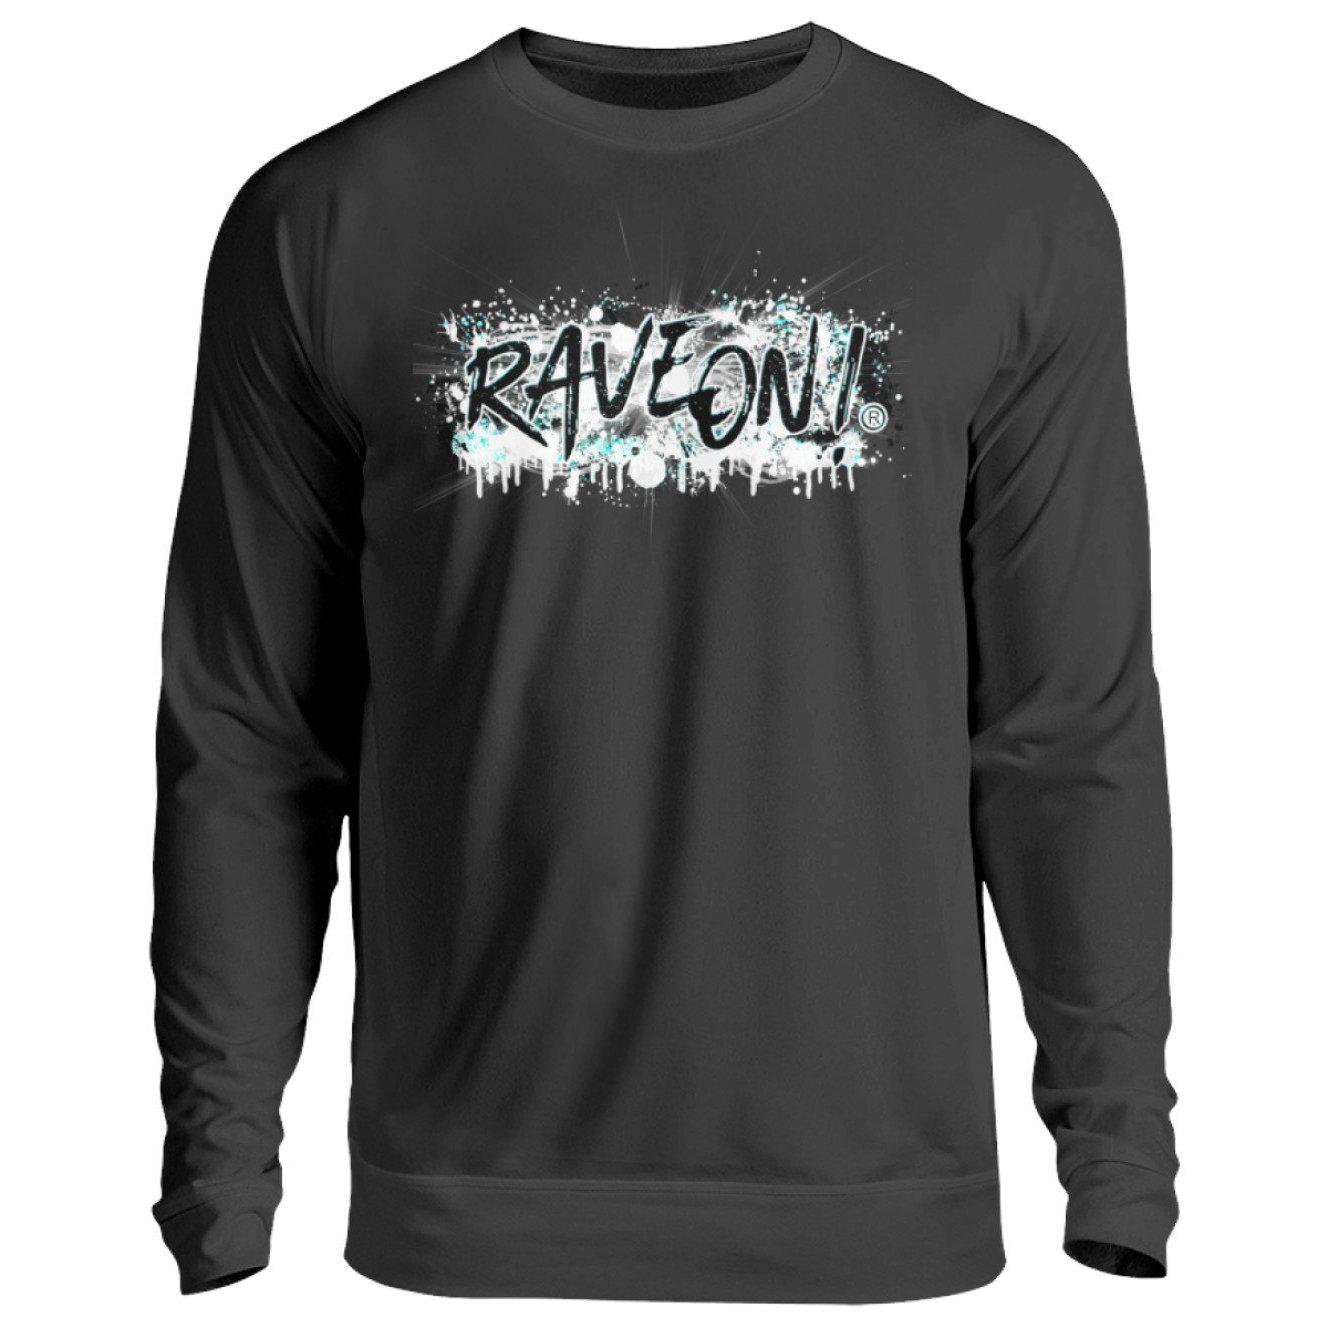 Rave On! Paint on white -Rave On!® - Unisex Pullover Unisex Sweatshirt Jet Black / S - Rave On!® the club & techno scene shop for cool young fashion streetwear style & fashion outfits + sexy festival 420 stuff